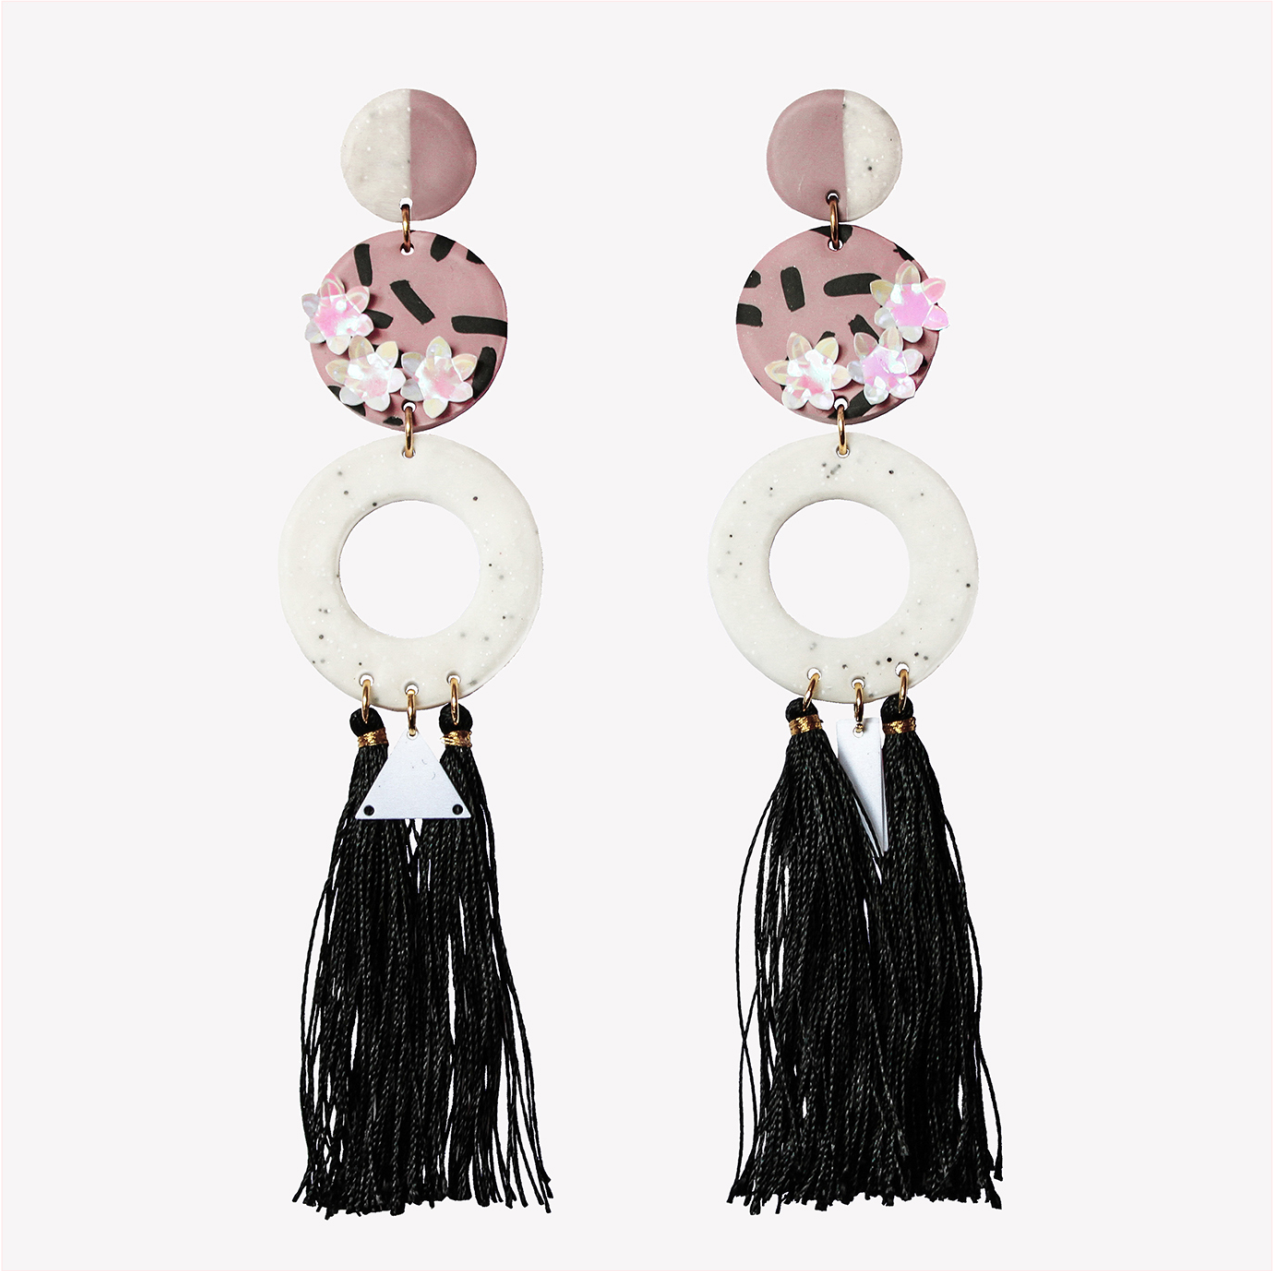 Long tassel fimo earrings with sequin flowers